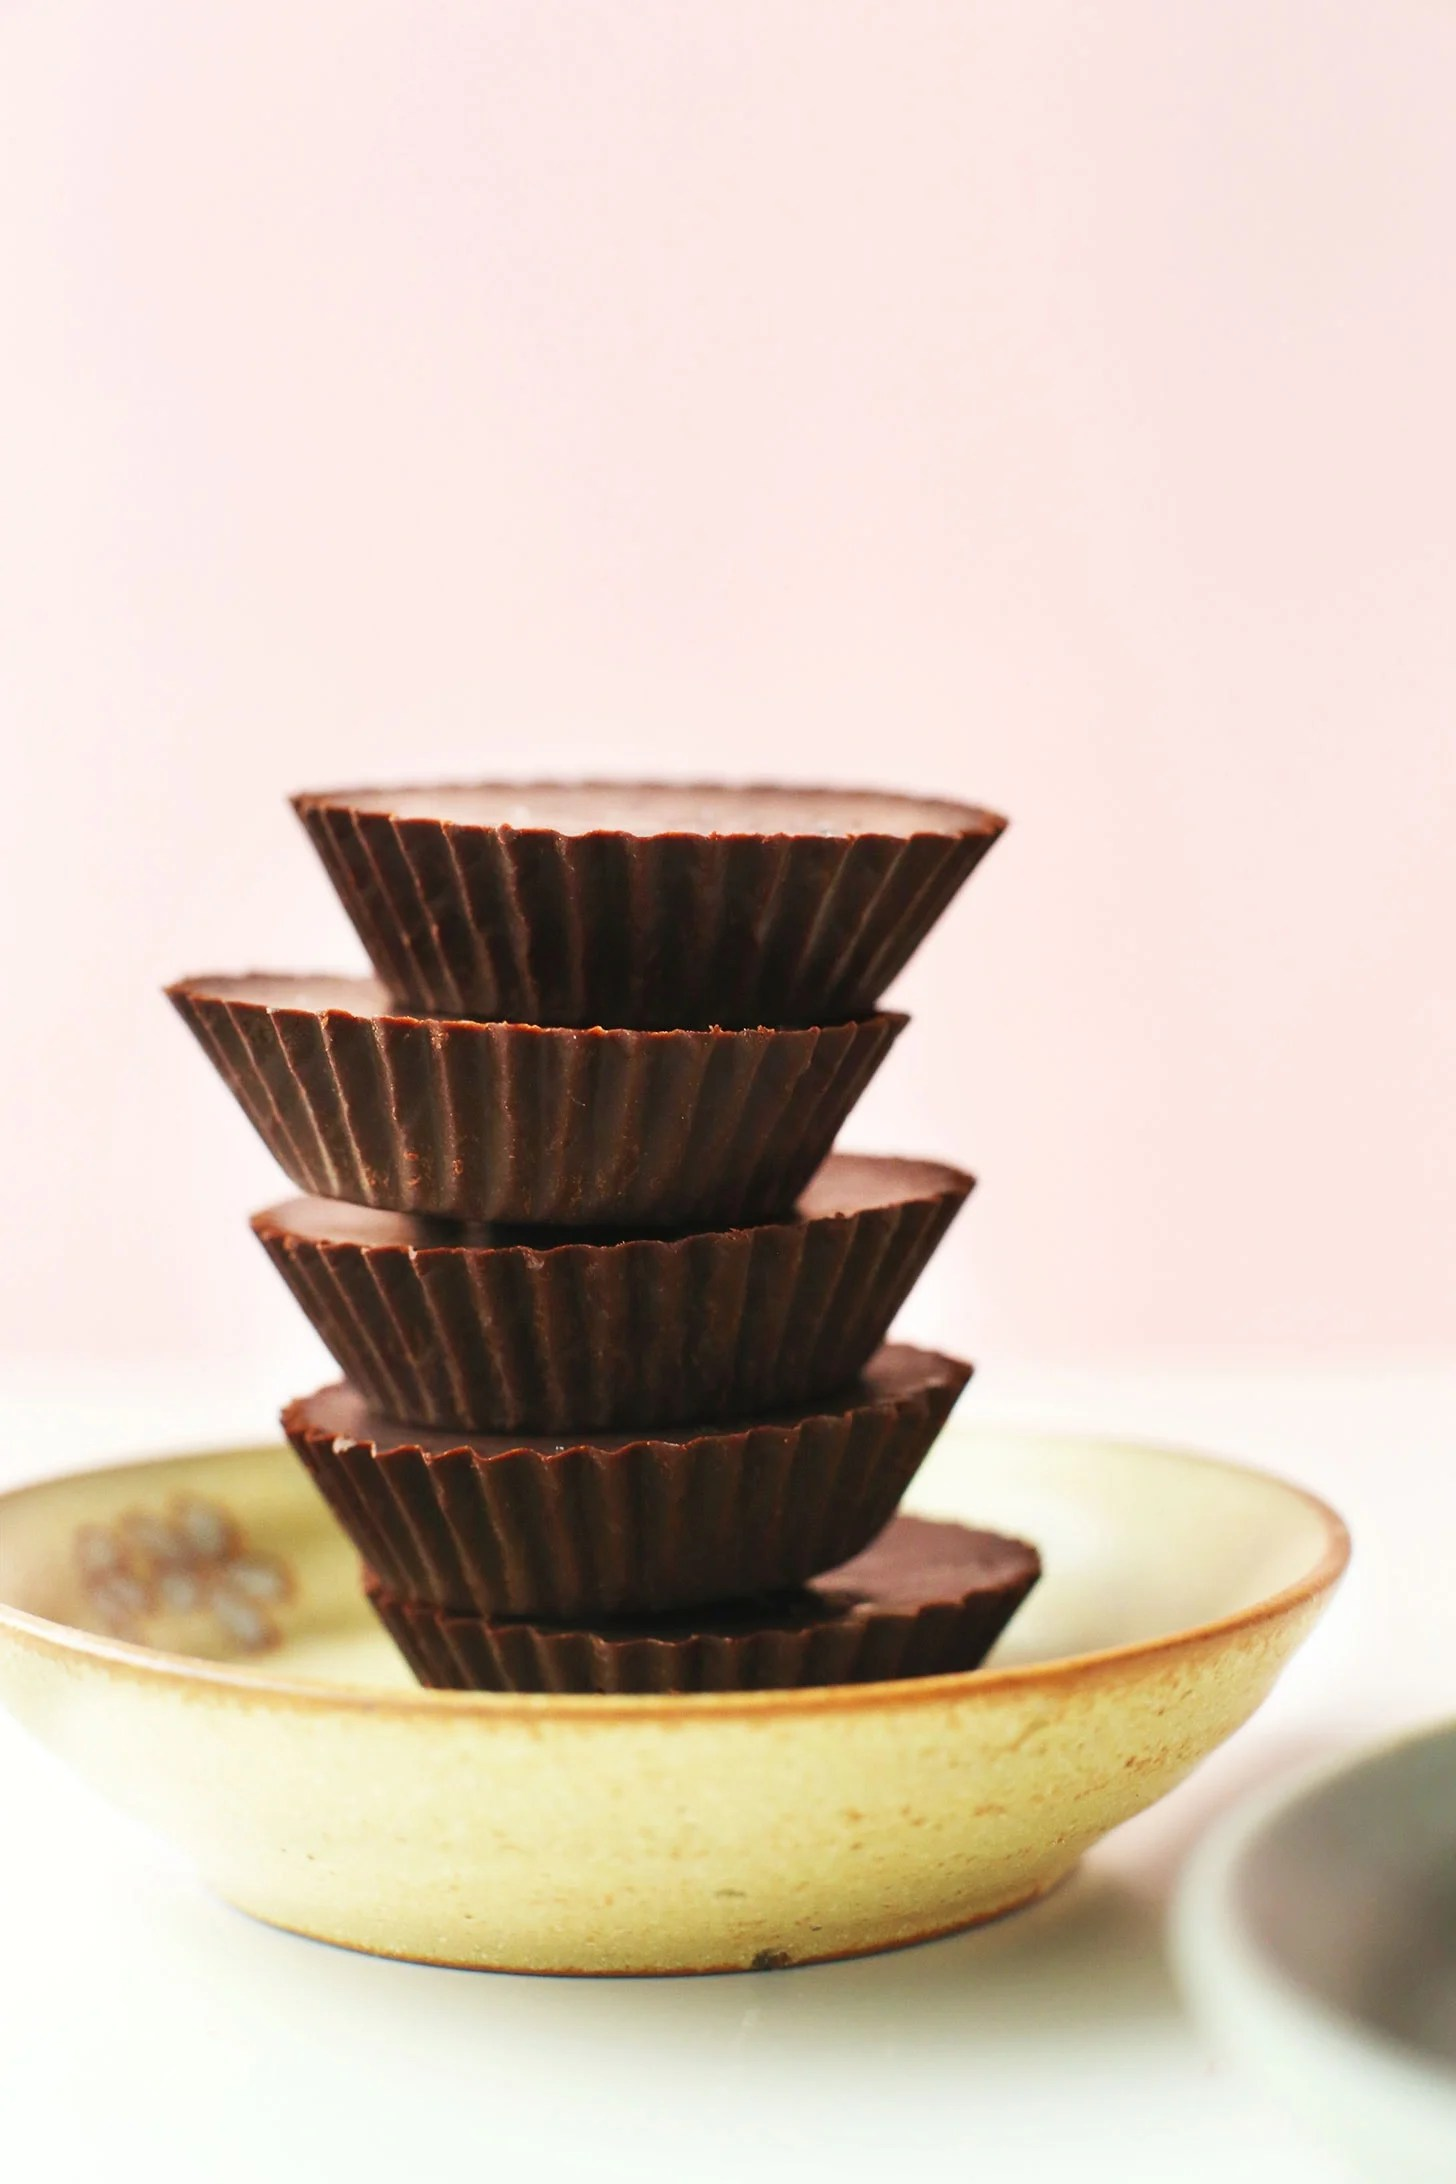 How to Make Easy Vegan Homemade Chocolate